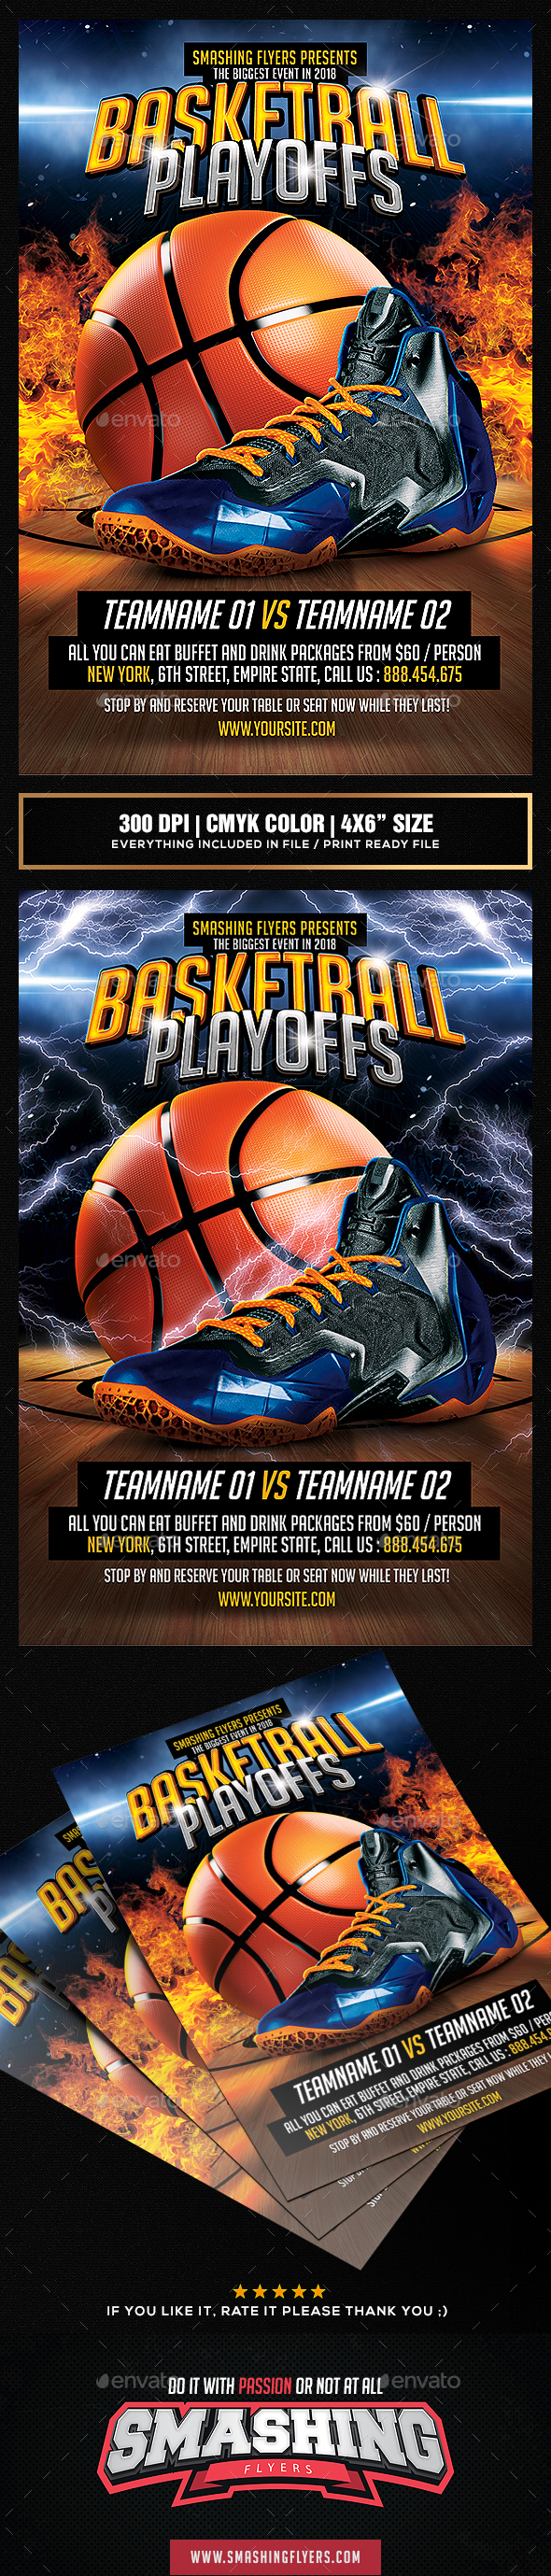 Basketball Playoffs Flyer template